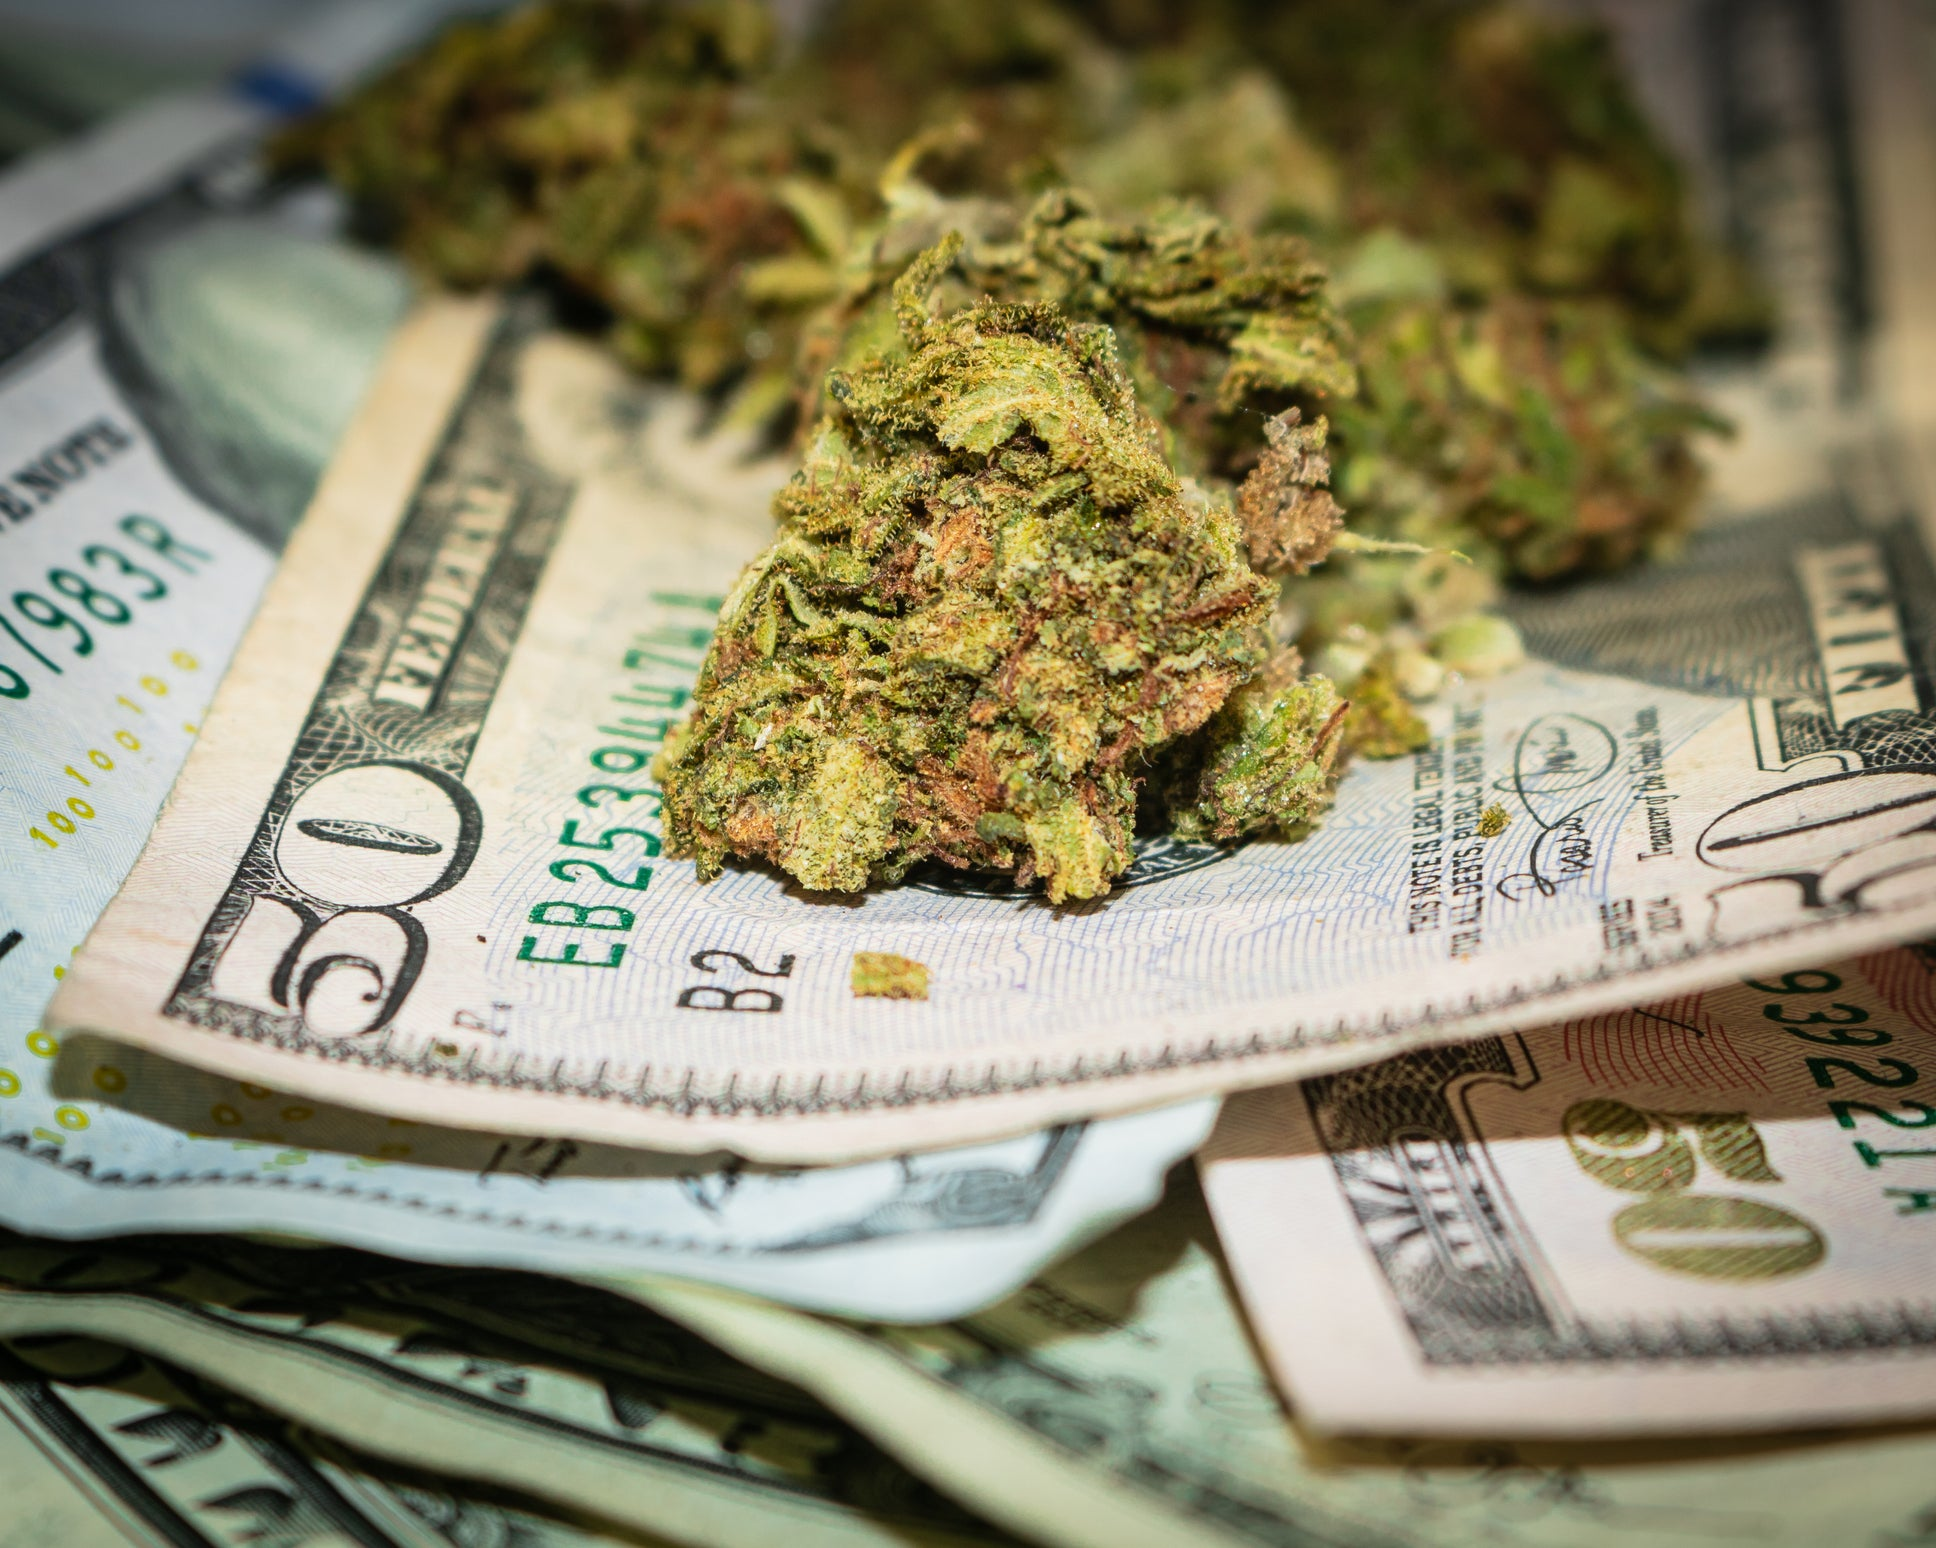 The 5 Top Marijuana Value Stocks in 2019 | The Motley Fool